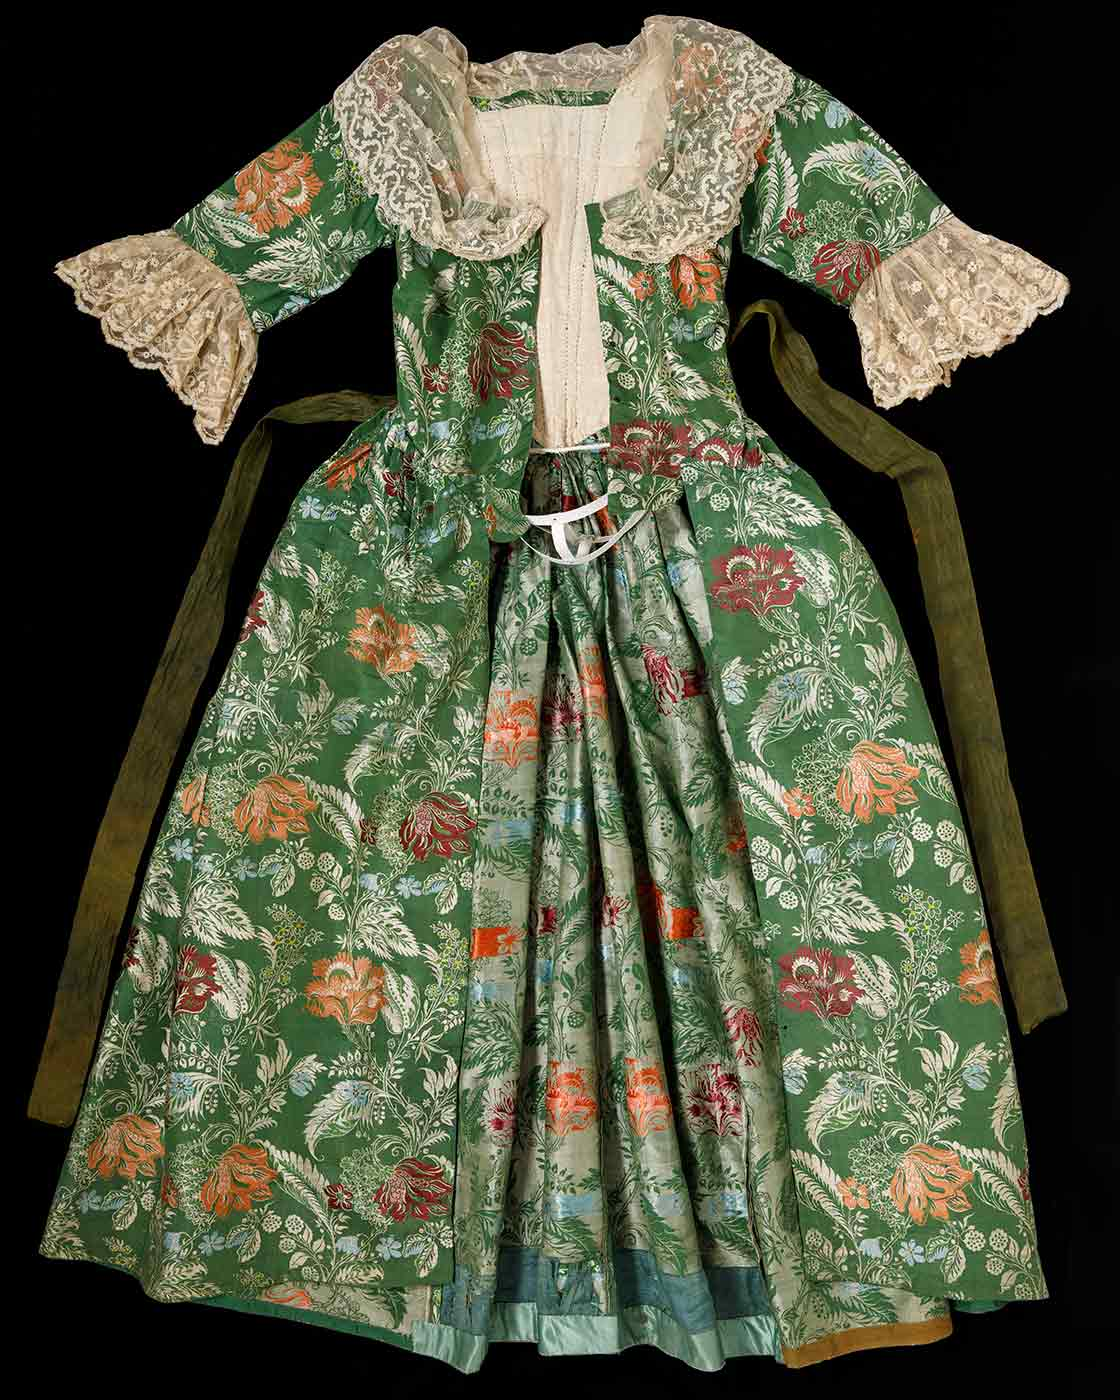 Green and floral brocade open-front gown with lace trim.